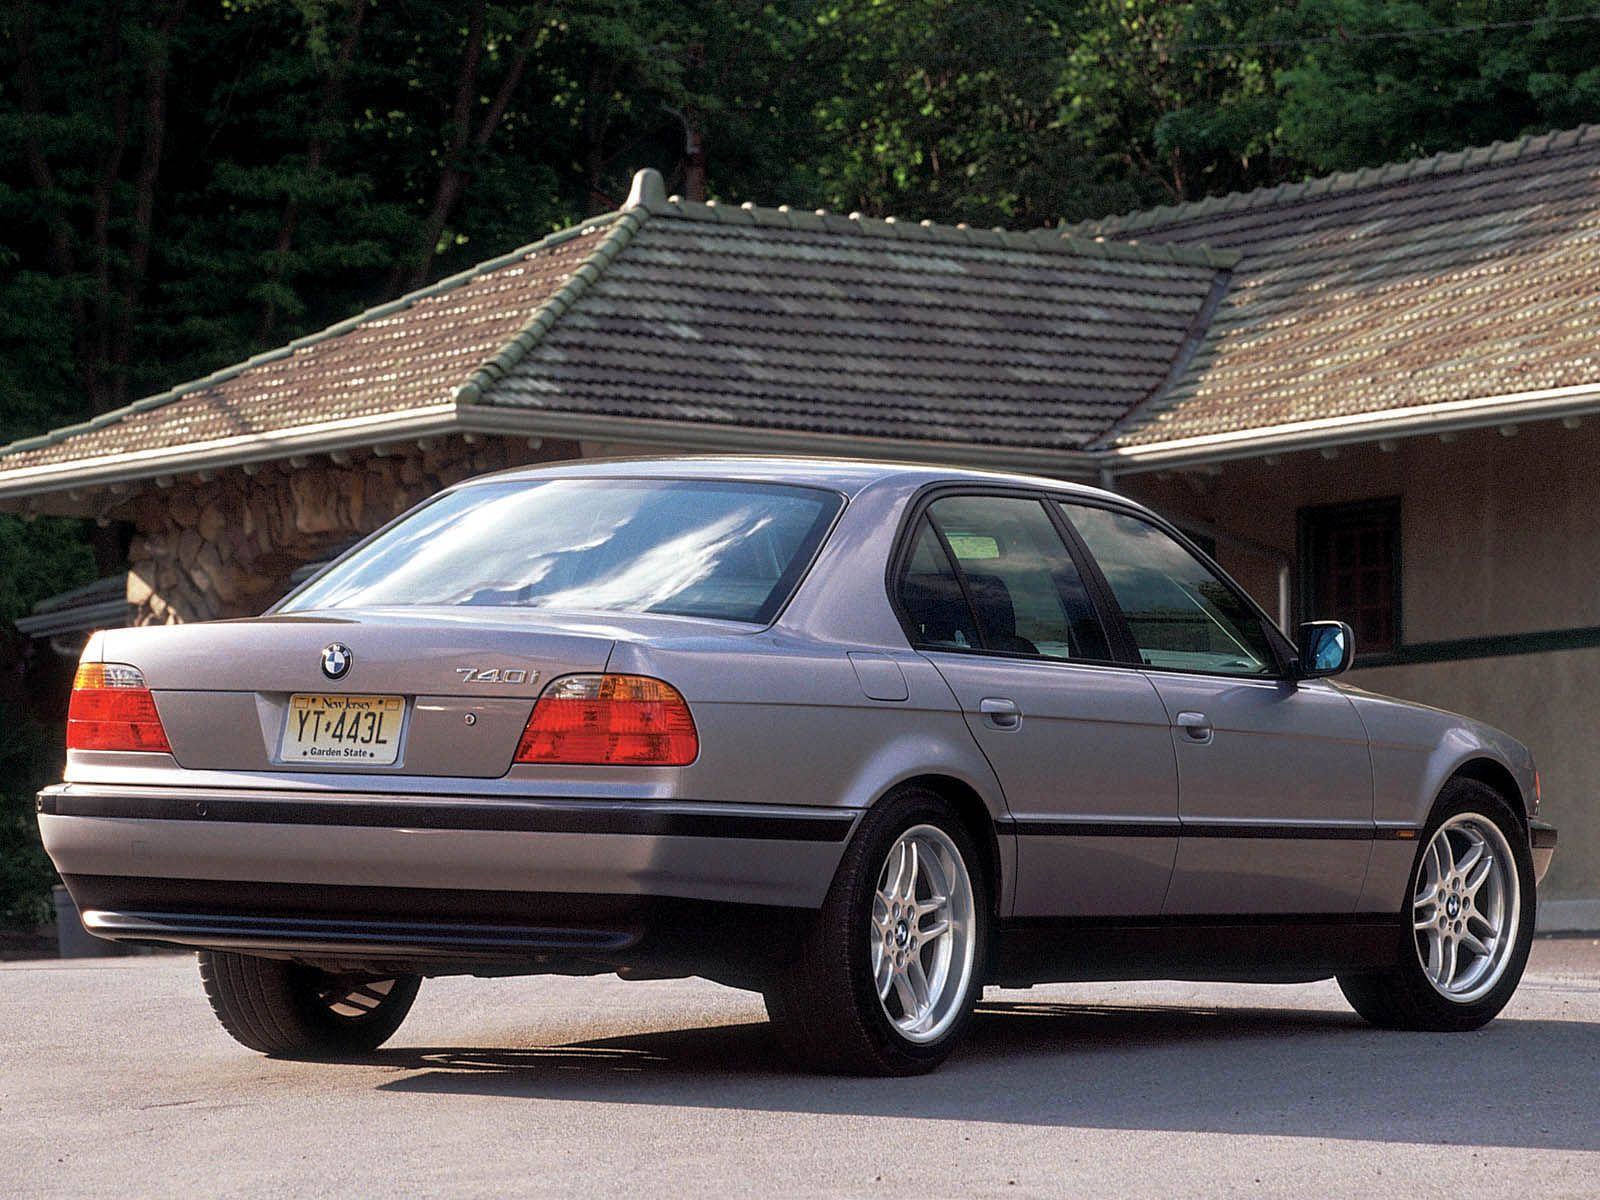 Bmw 7 series e38 1994 2001 bmw 7 series pinterest bmw cars and bmw s